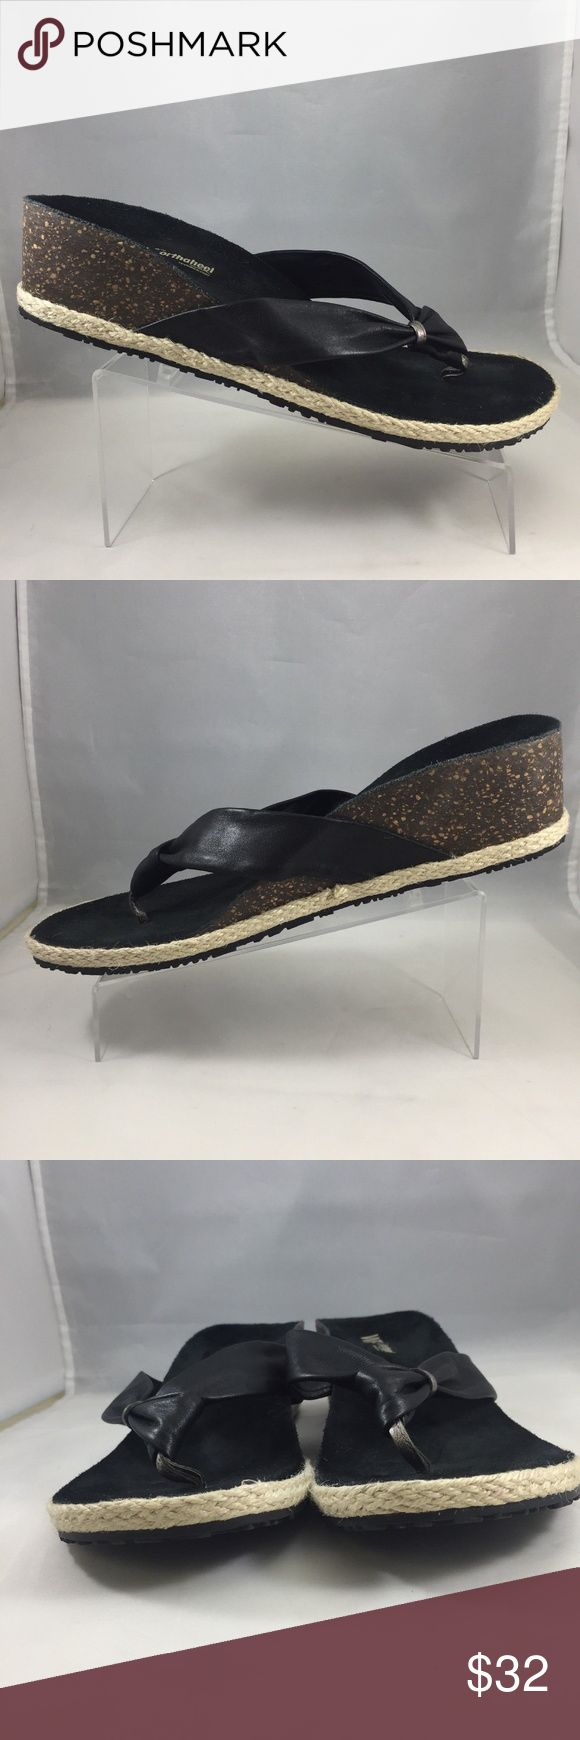 Dr Andrew Weil Orthaheel CALM Black Leathr Sandals Dr Andrew Weil Orthaheel CALM Black Leather Thong Sandals  Sz 9B  Retail $120 Nice pre-owned condition. Normal wear.  Please see pics  GL711080399105-SH350 Dr Andrew Weil Shoes Sandals